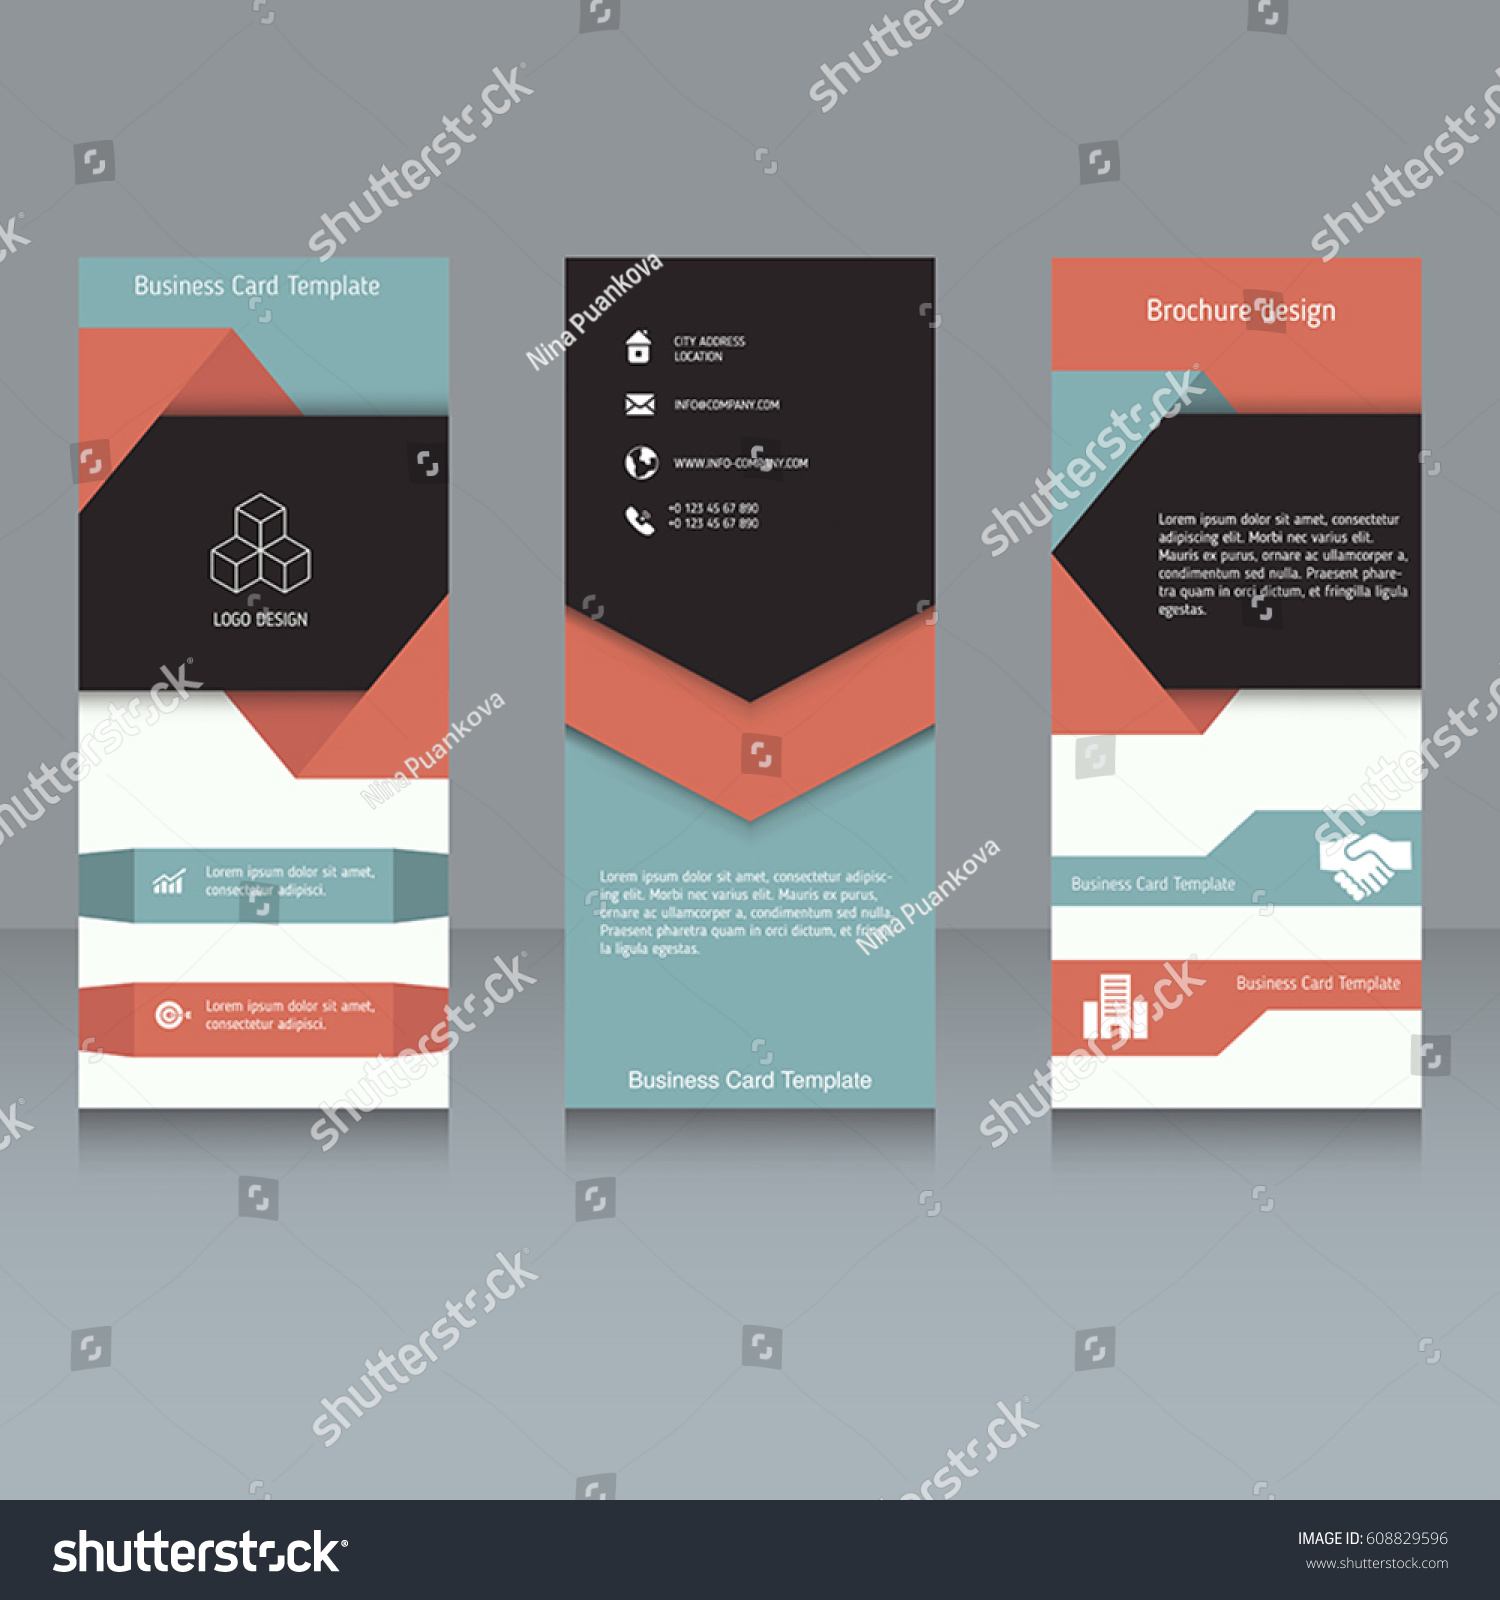 Tri fold business card template image collections templates beaufiful tri fold business card template images tri fold brochure booklet brochure designs easy adapt stock magicingreecefo Image collections